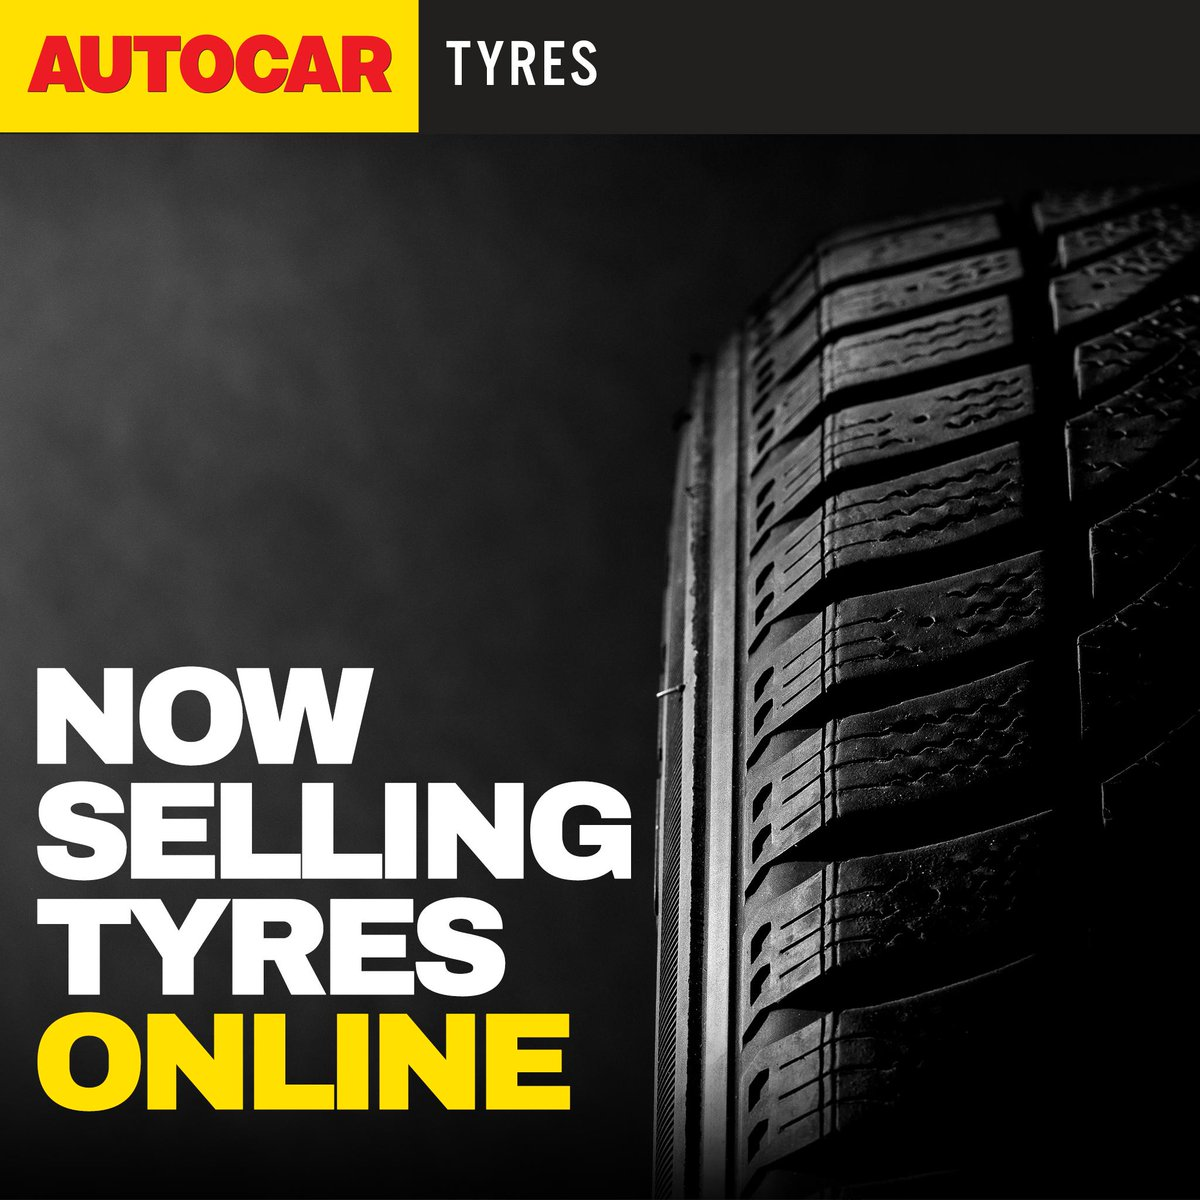 Promoted: Autocar has teamed up with Summit to offer an online tyre-buying service, stocking thousands of types, brands and sizes. Here's all the info:  https://buff.ly/2X4SjKE